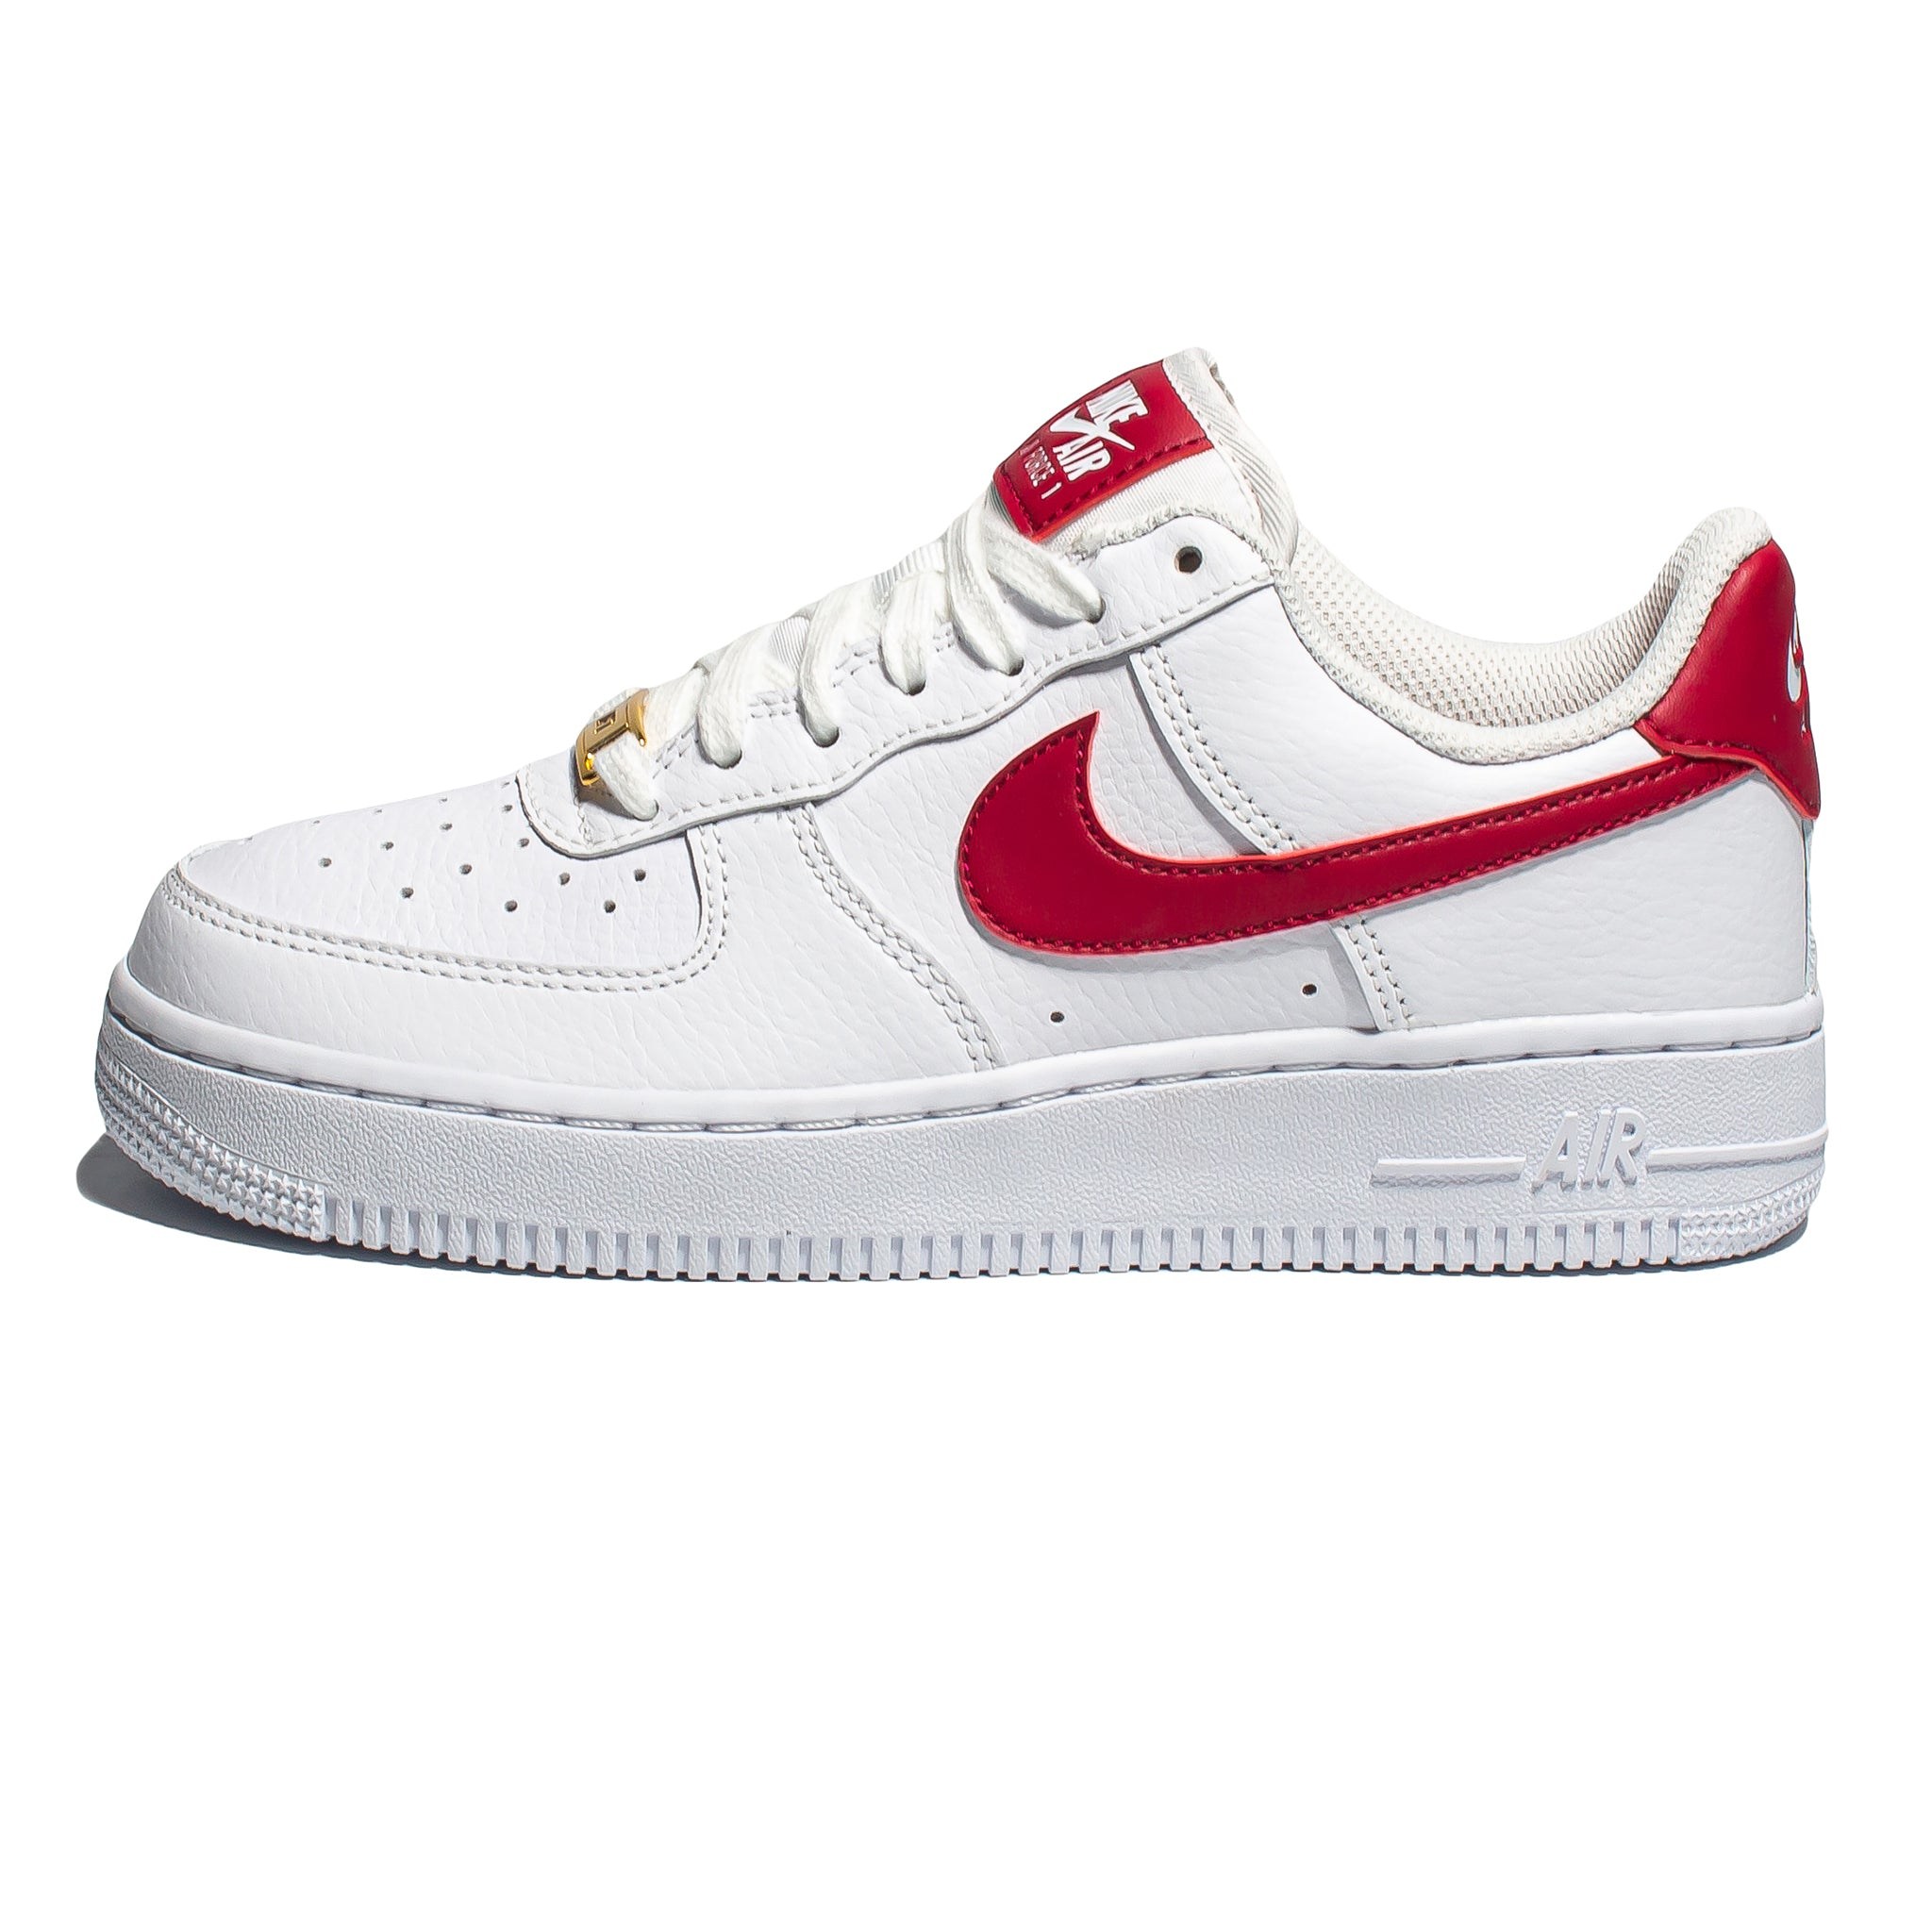 Nike Air Force 1 '07 'White/Gym Red'